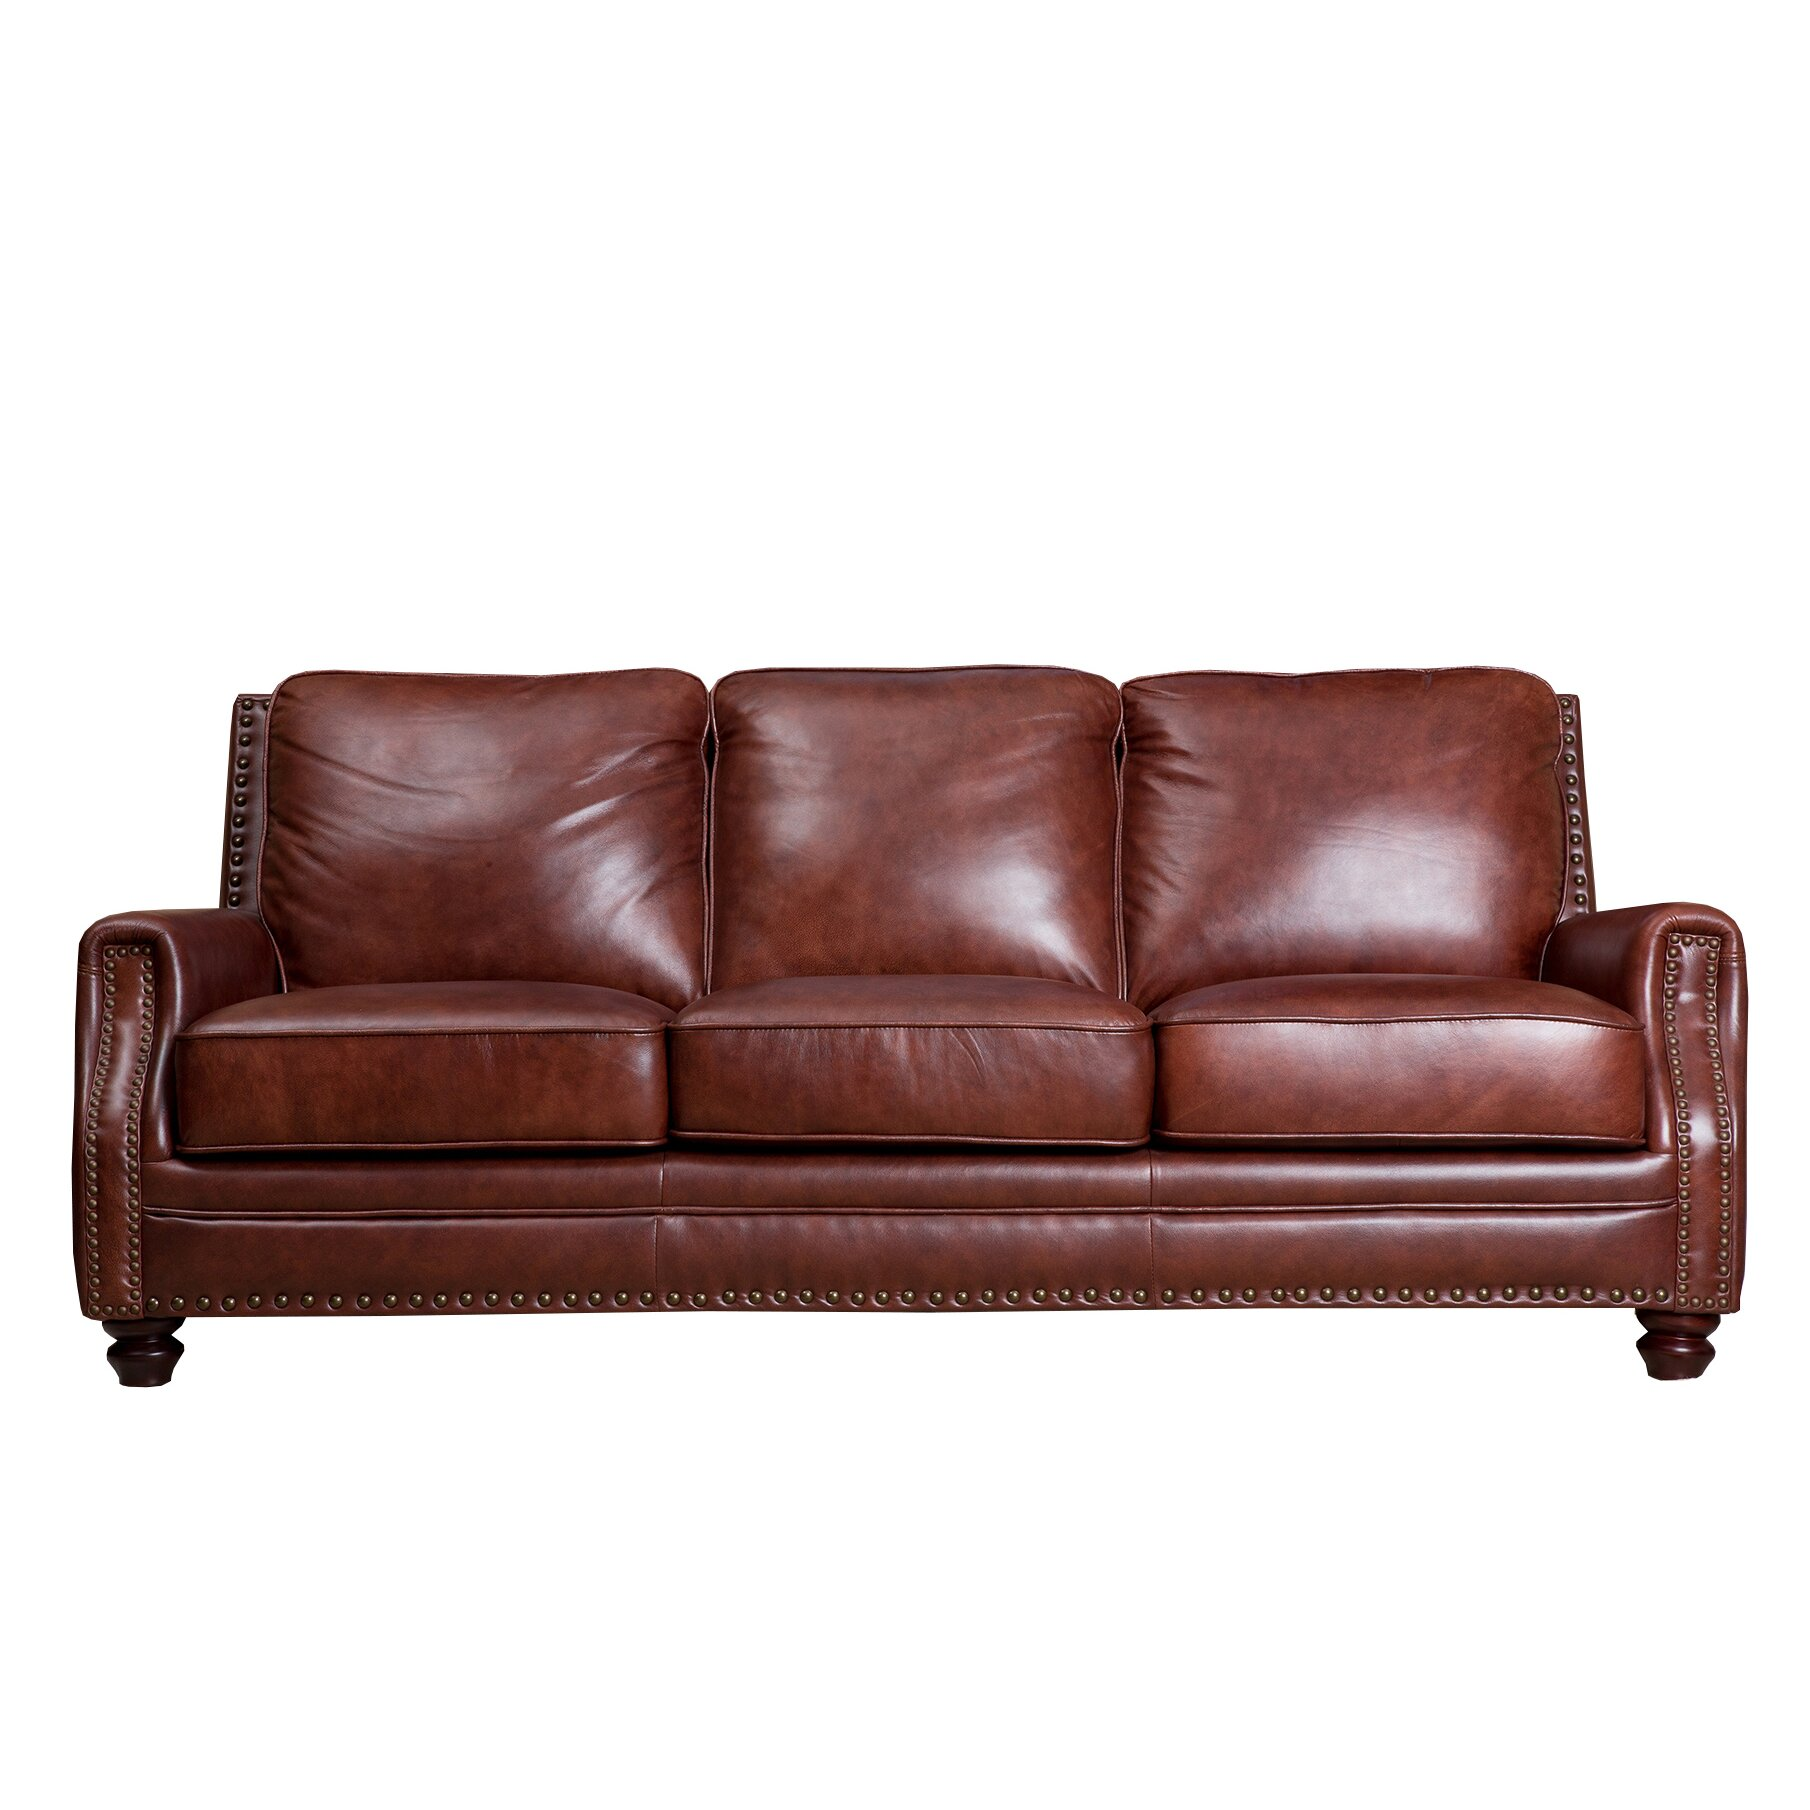 Abbyson Living Bel Air Leather Sofa Amp Reviews Wayfair